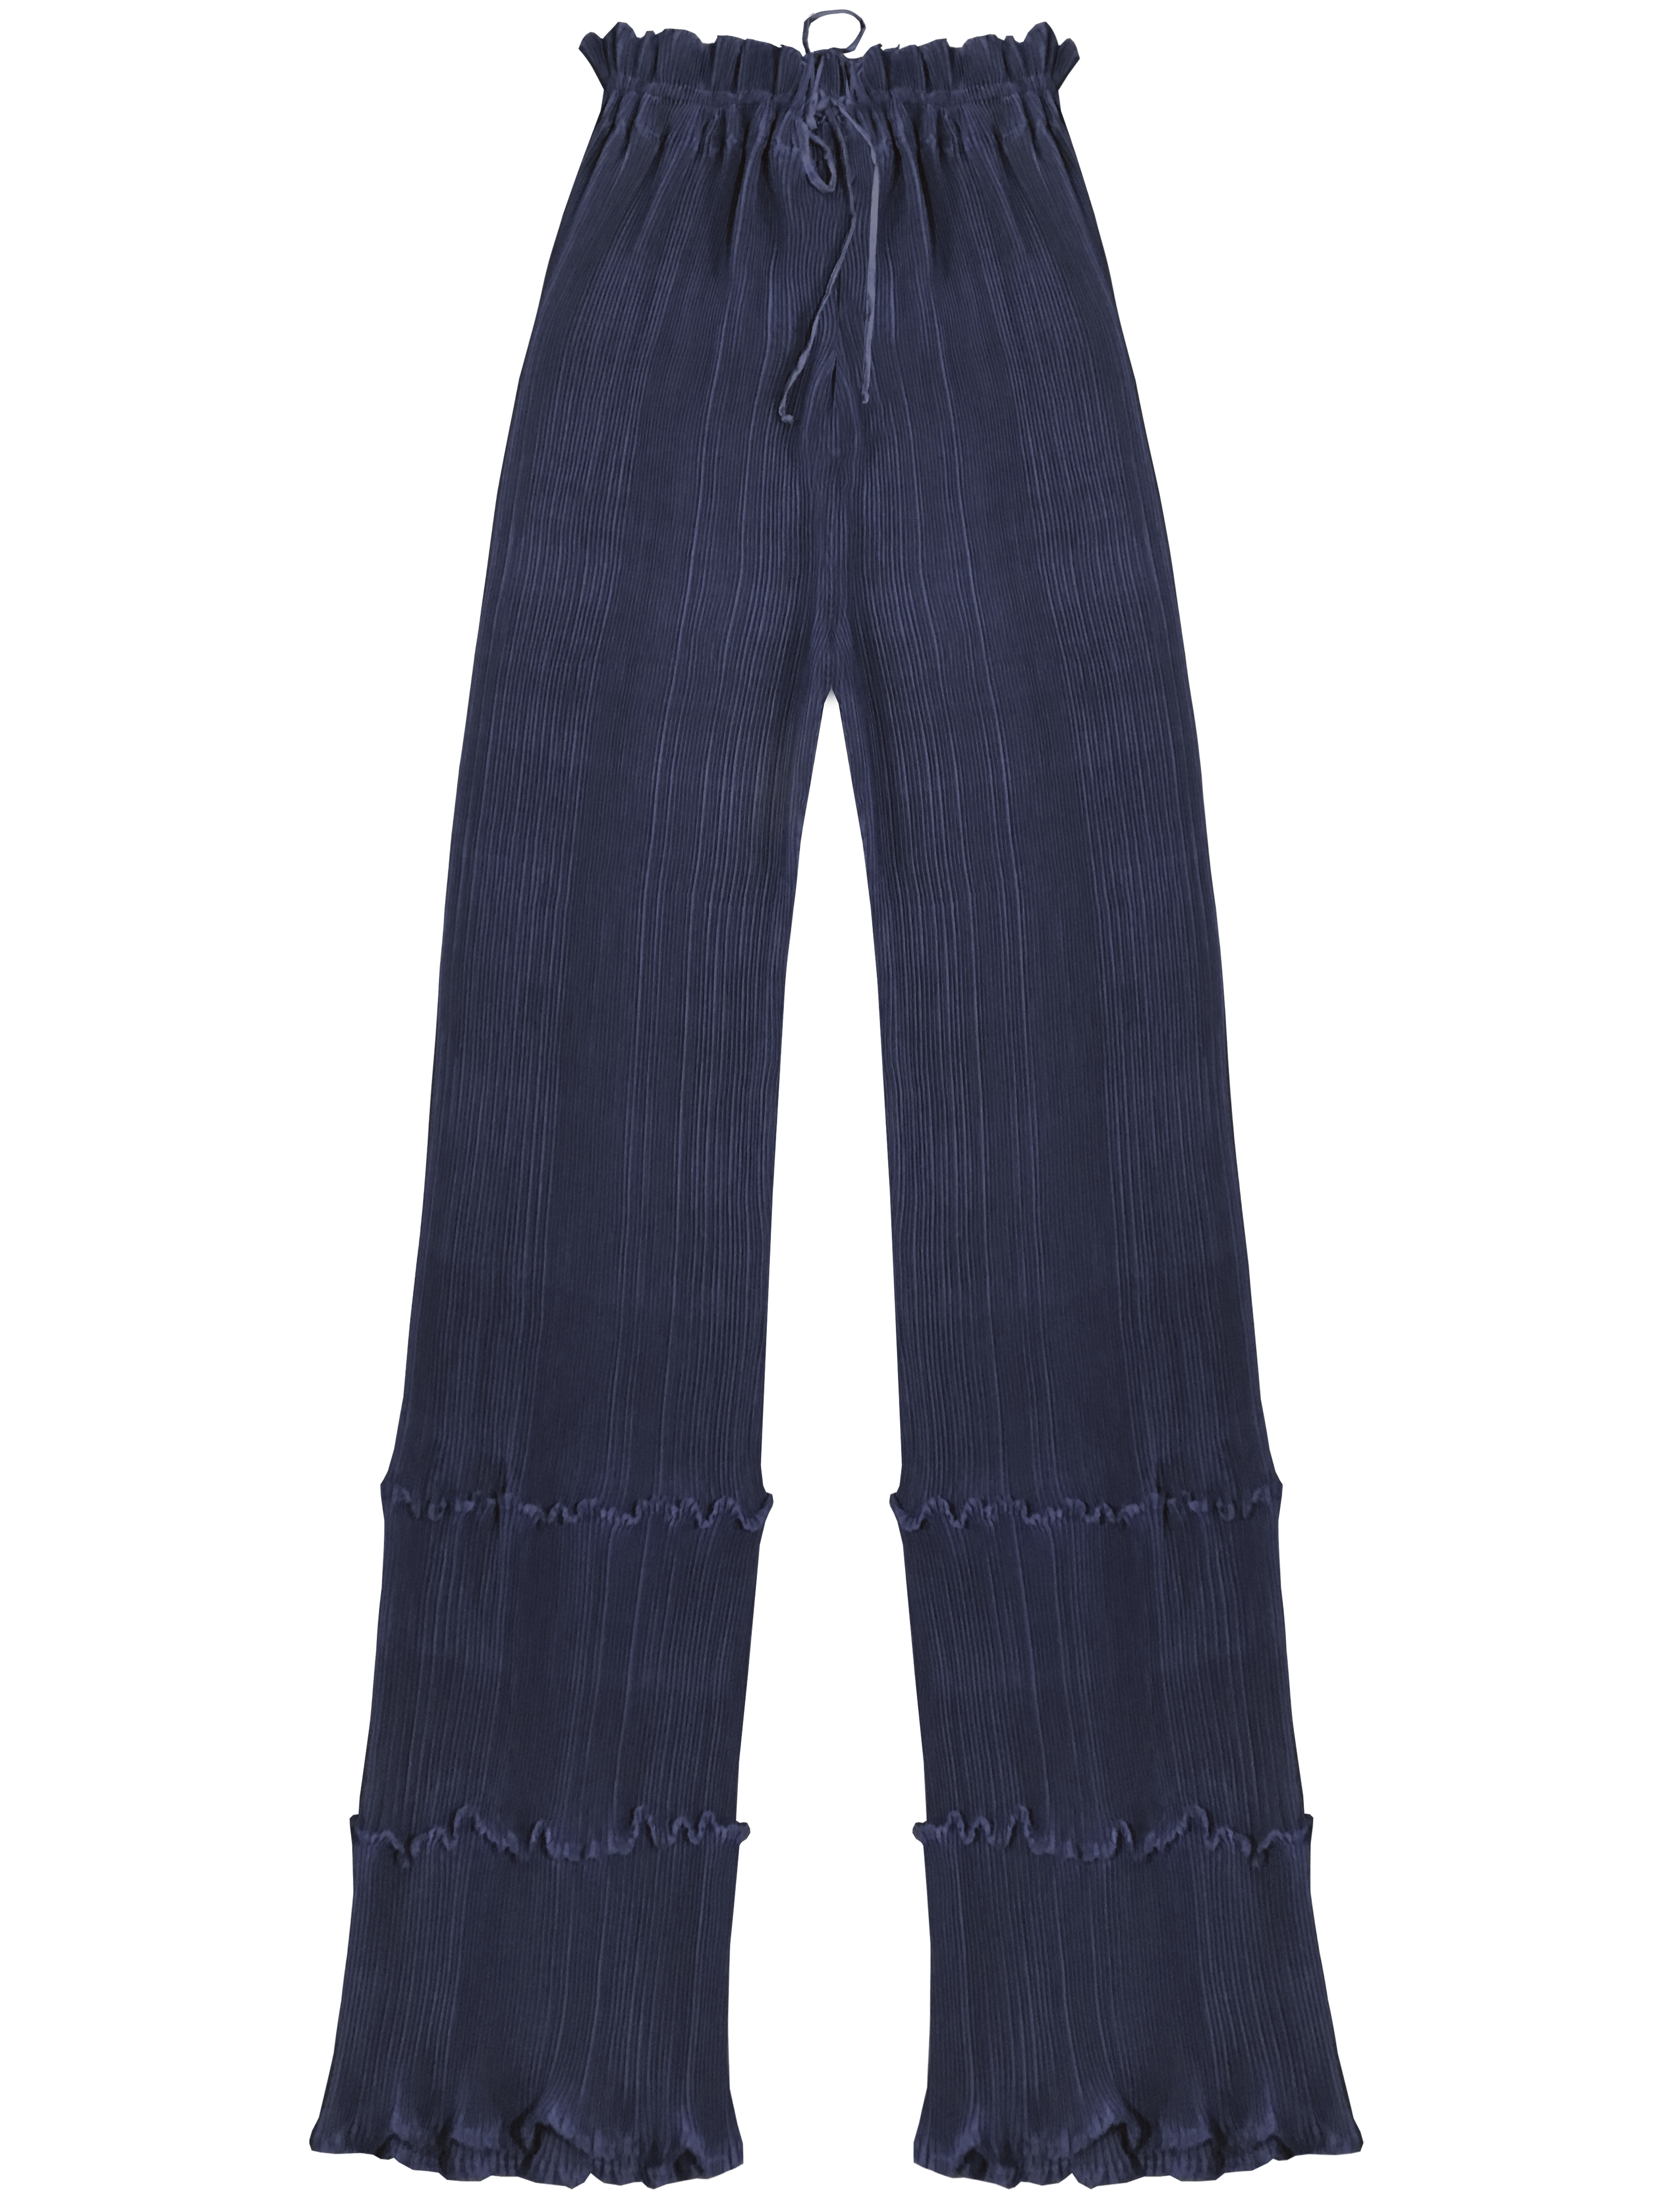 Quartz Trouser - Navy by Georgia Hardinge on curated-crowd.com